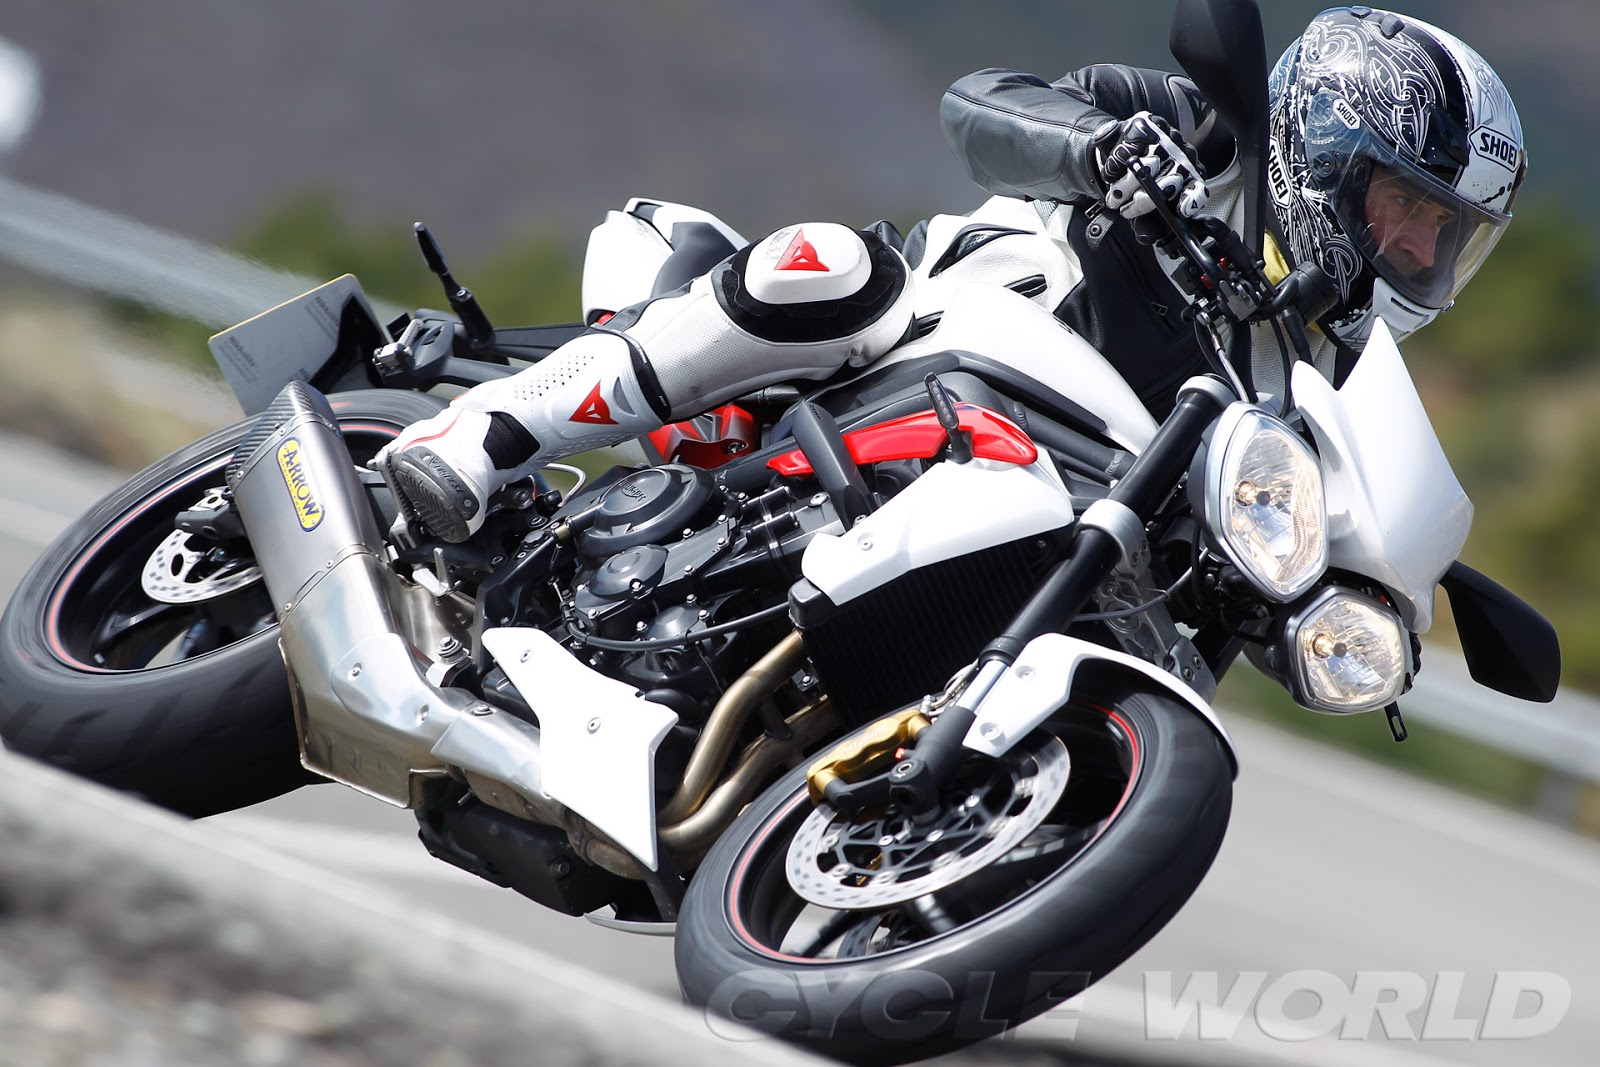 2013 triumph street triple r first ride angeles brothers cycles. Black Bedroom Furniture Sets. Home Design Ideas